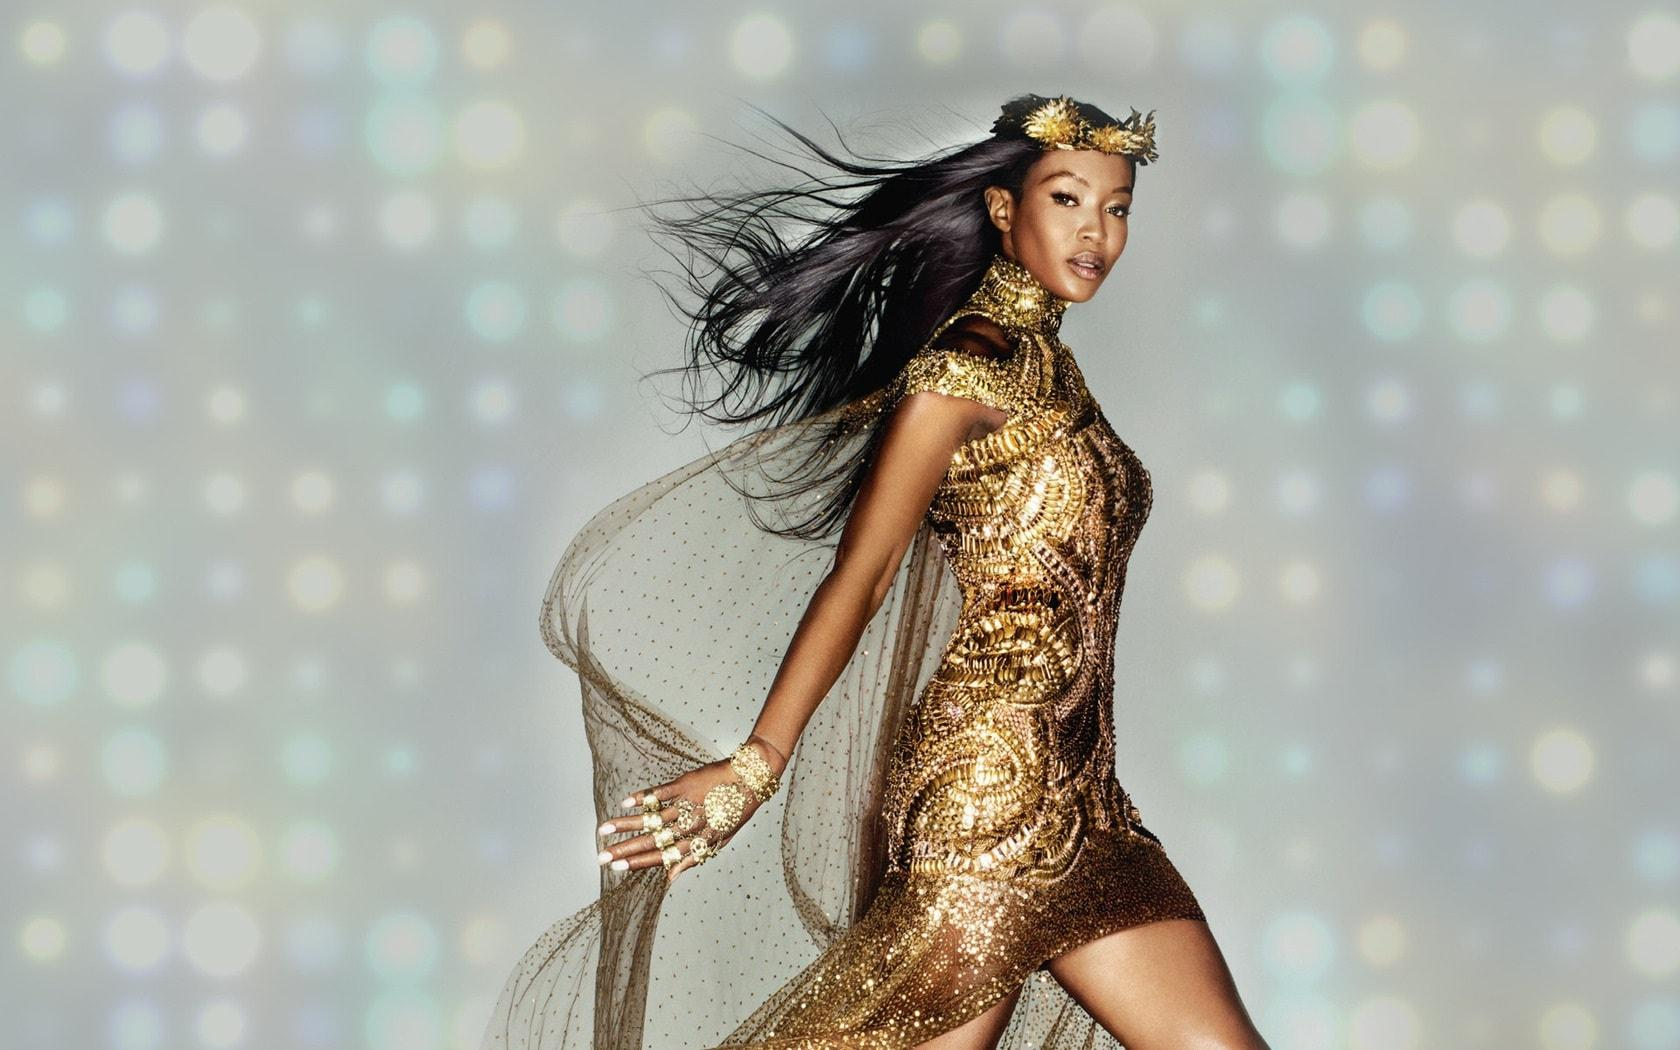 Naomi Campbell HD Wallpapers | 7wallpapers.net